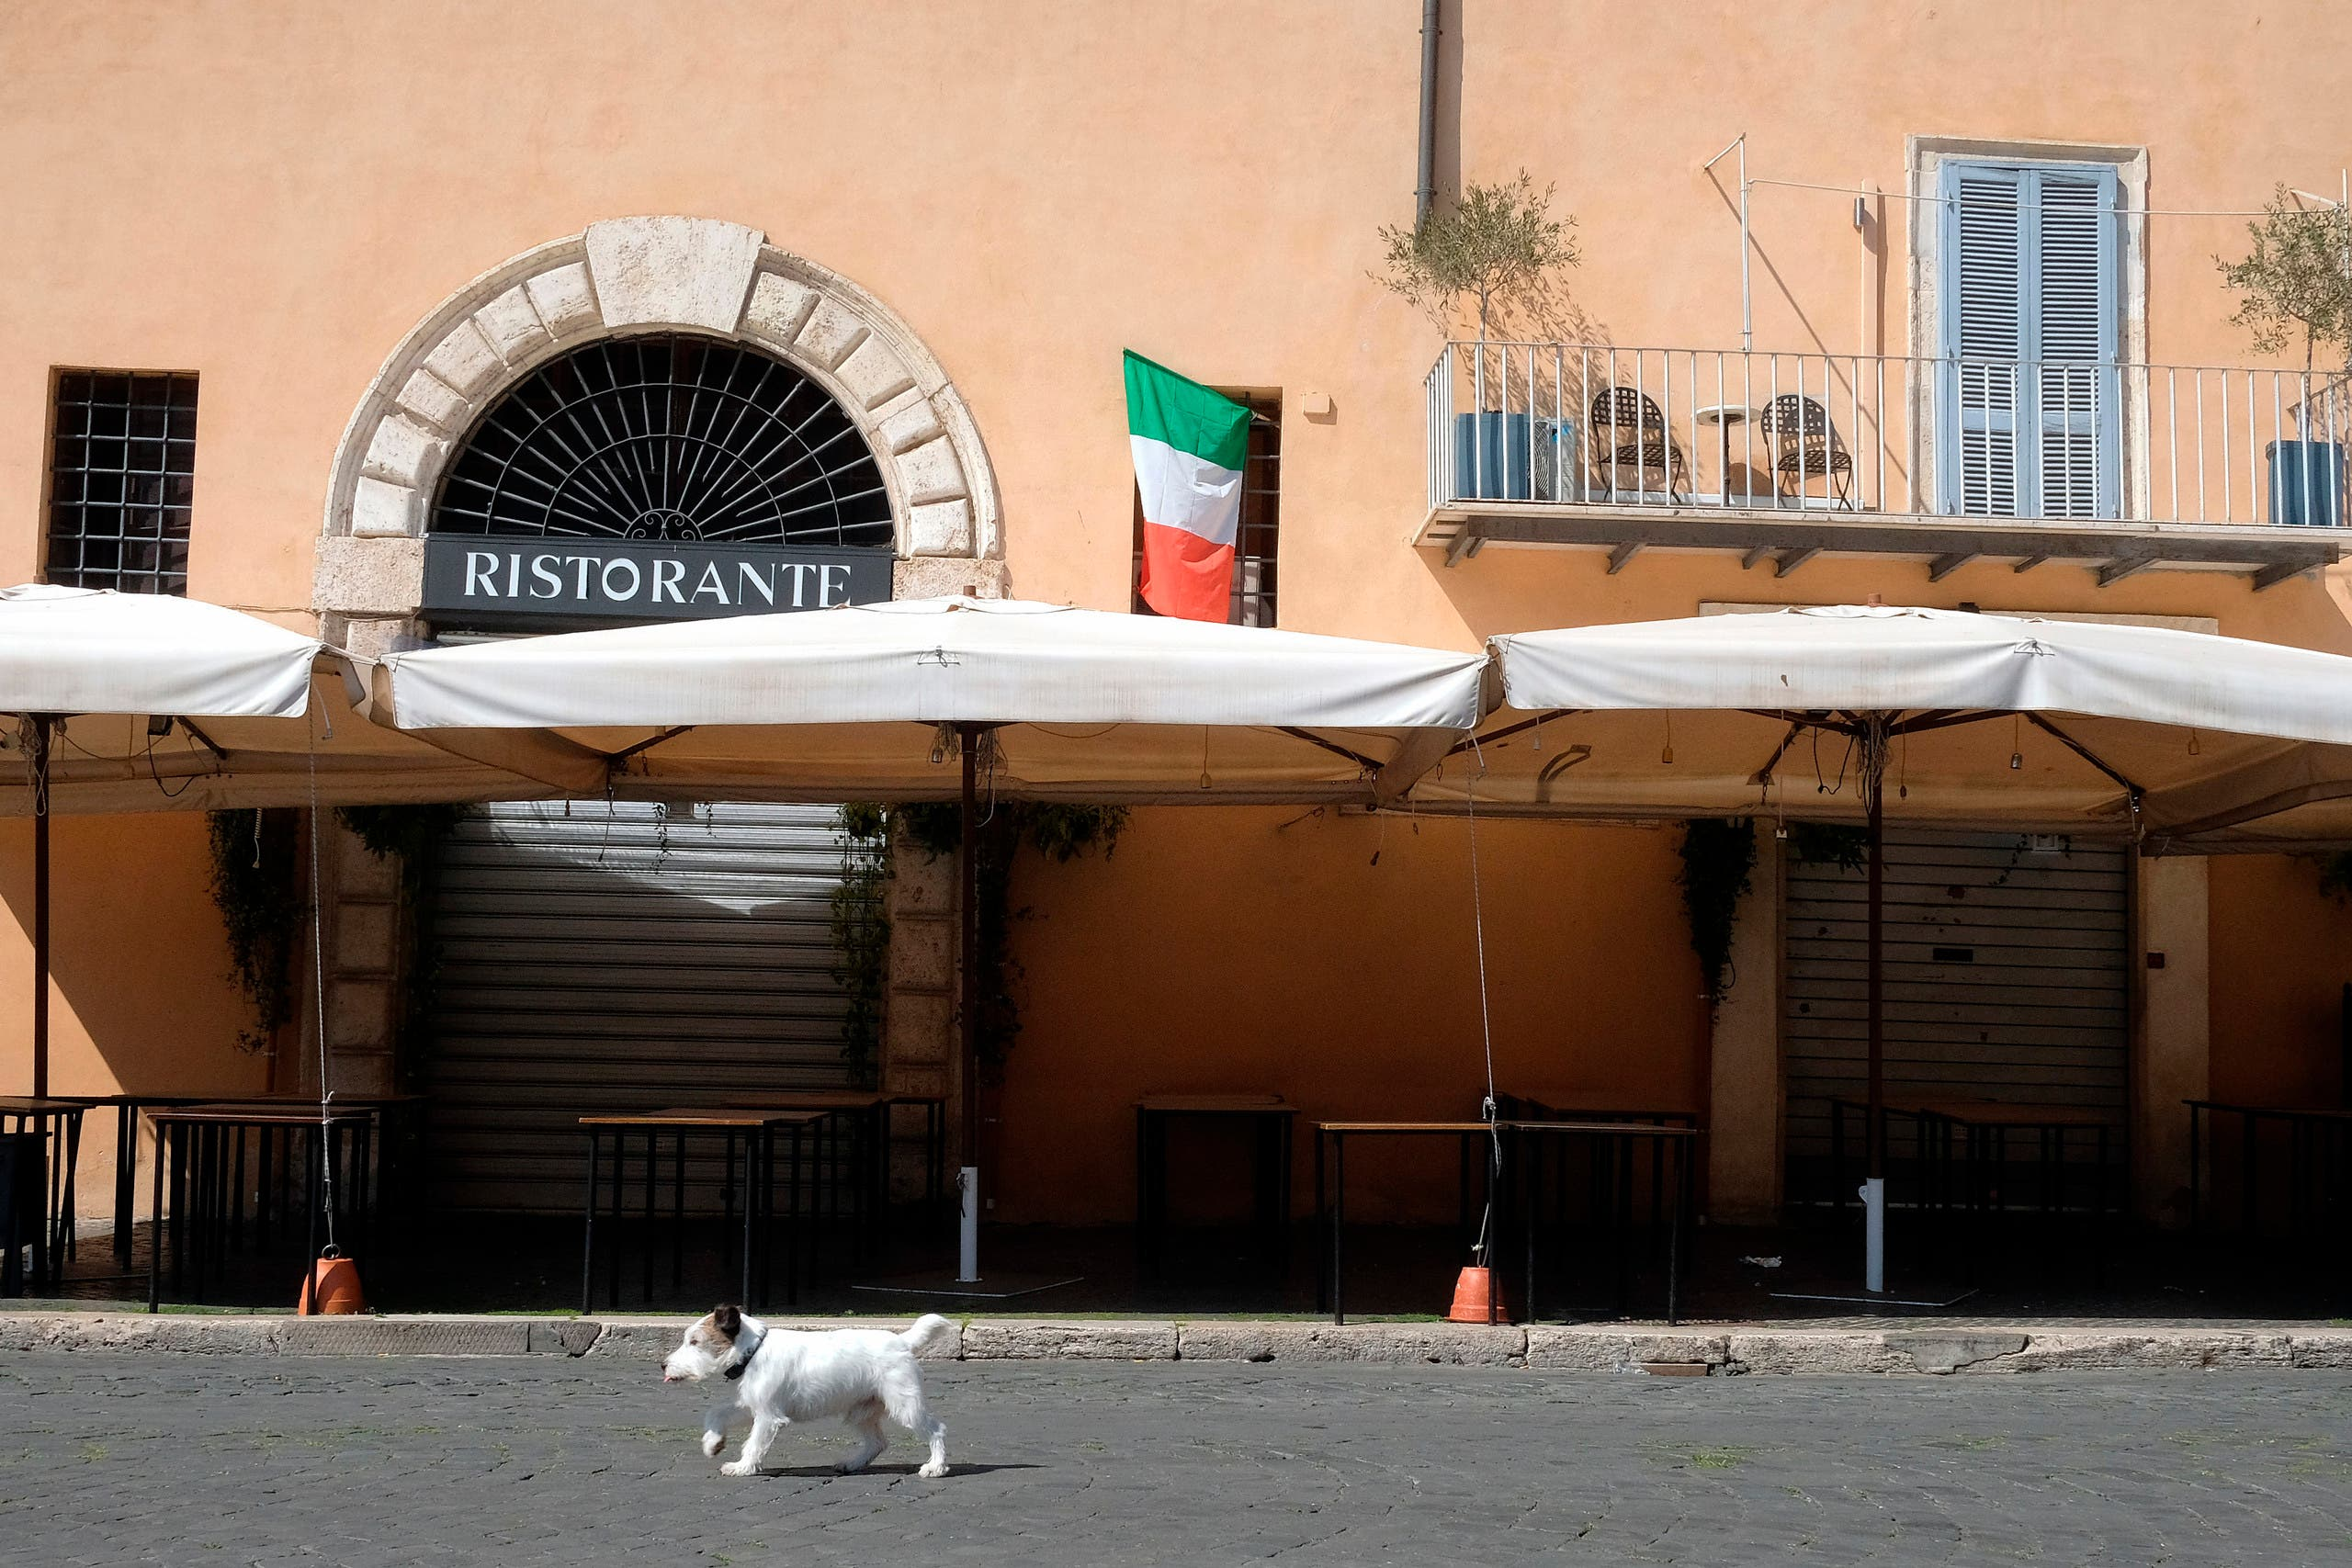 A dog passes by a closed restaurant as an Italian flag hangs from a window, in Rome on April 7, 2020. (AP)